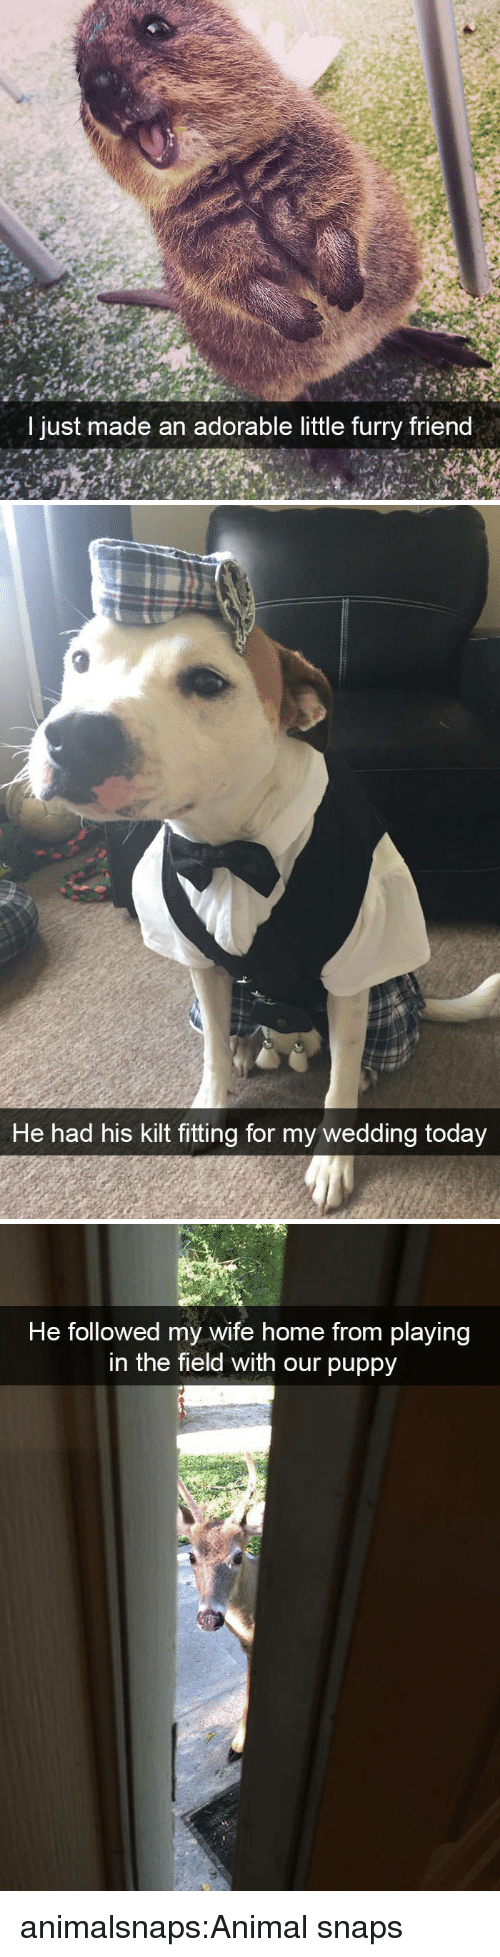 Target, Tumblr, and Animal: I jus  t m  ade an adorable little furry friend   He had his kilt fitting for my wedding today   He followed my wife home from playing  in the field with our puppy animalsnaps:Animal snaps